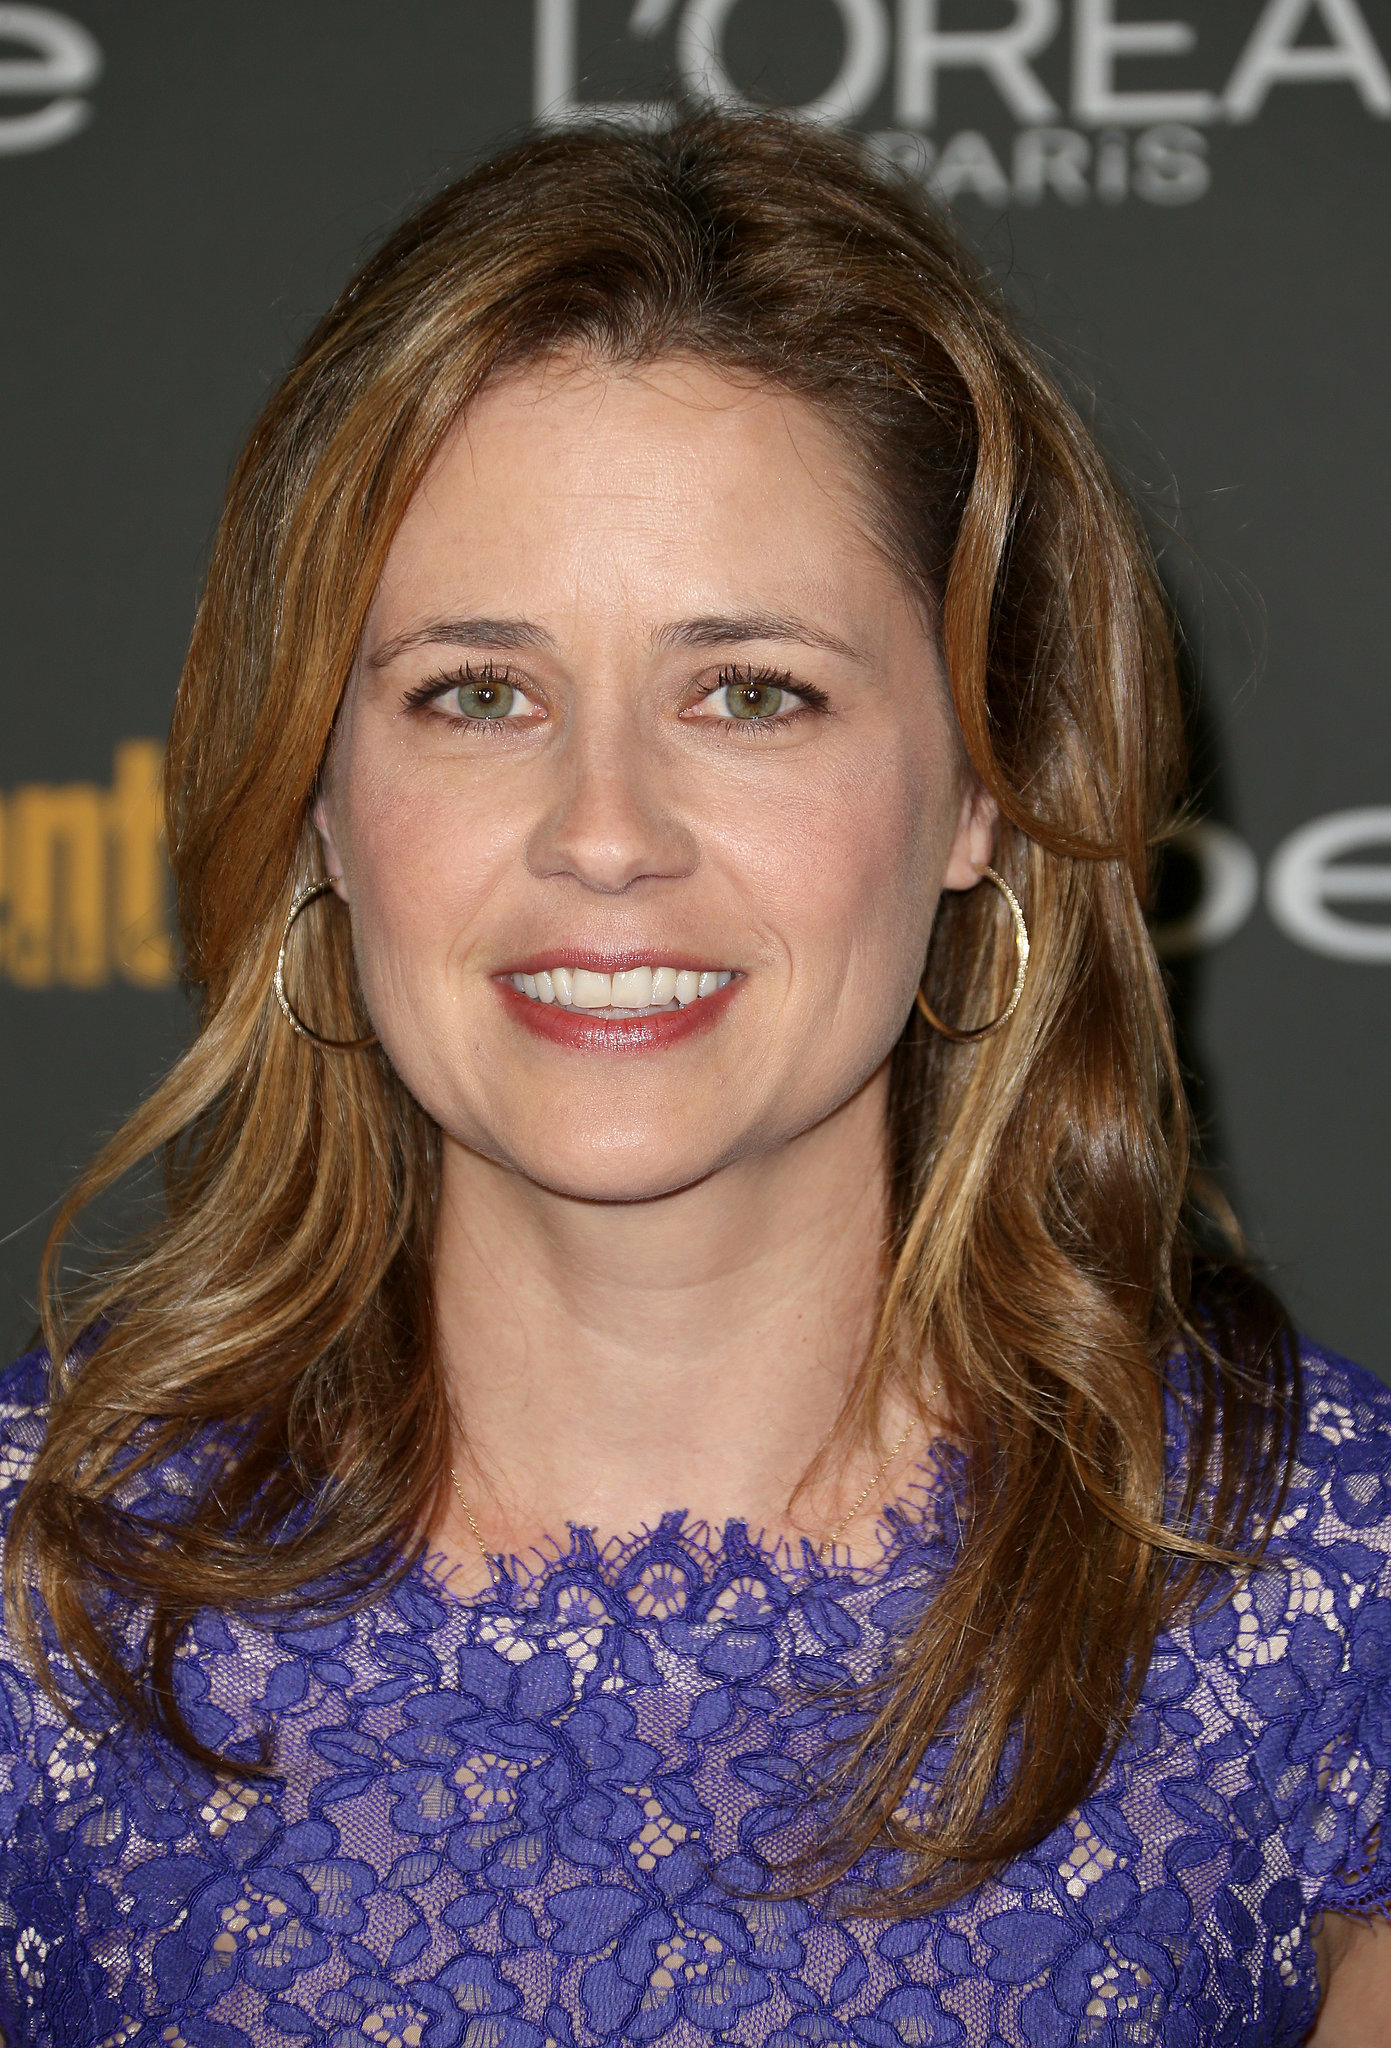 Jenna Fischer kept this easy and breezy at Ente